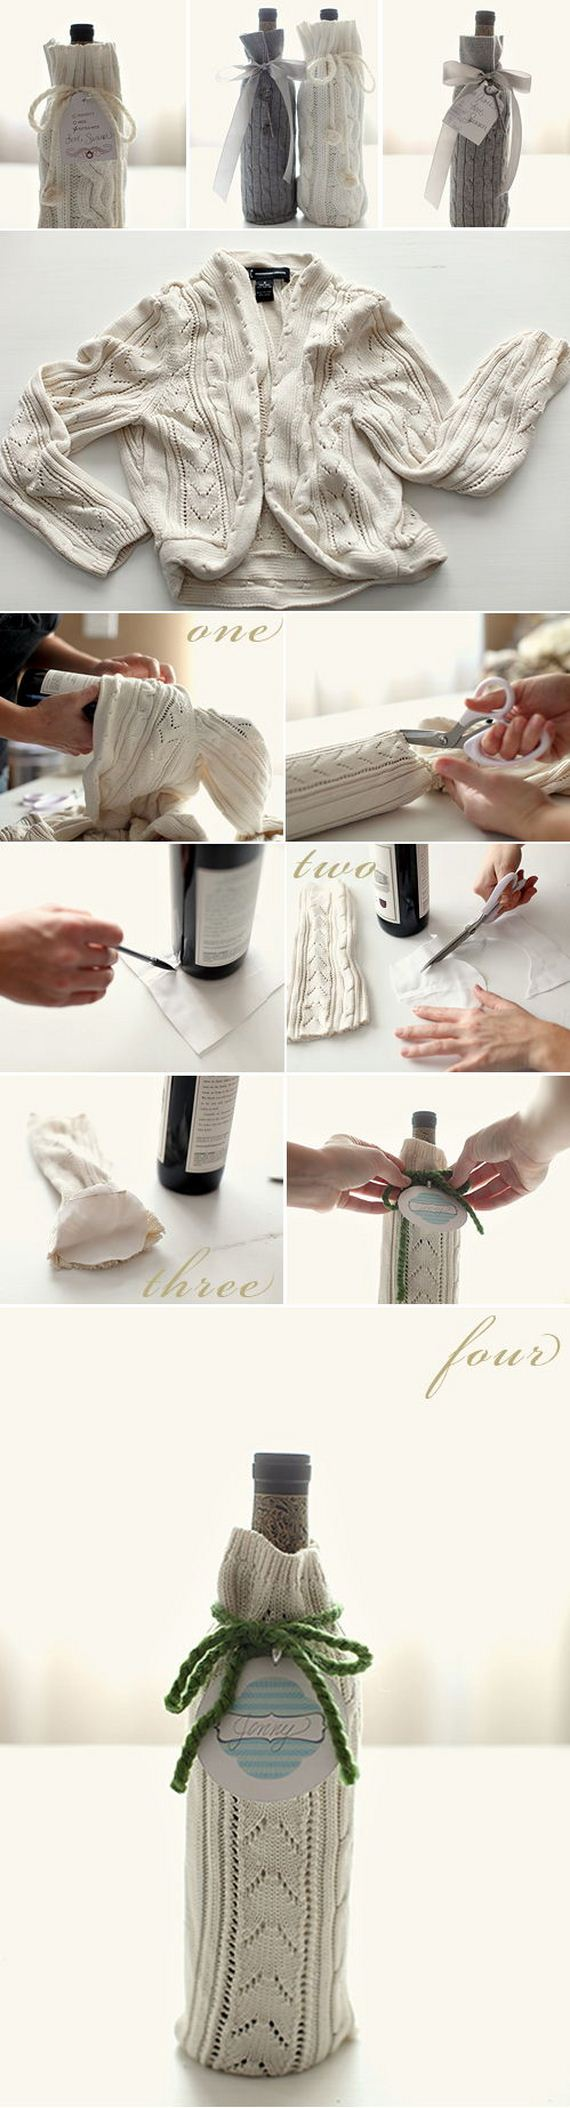 06-DIY-Ideas-For-Recycling-Old-Sweaters